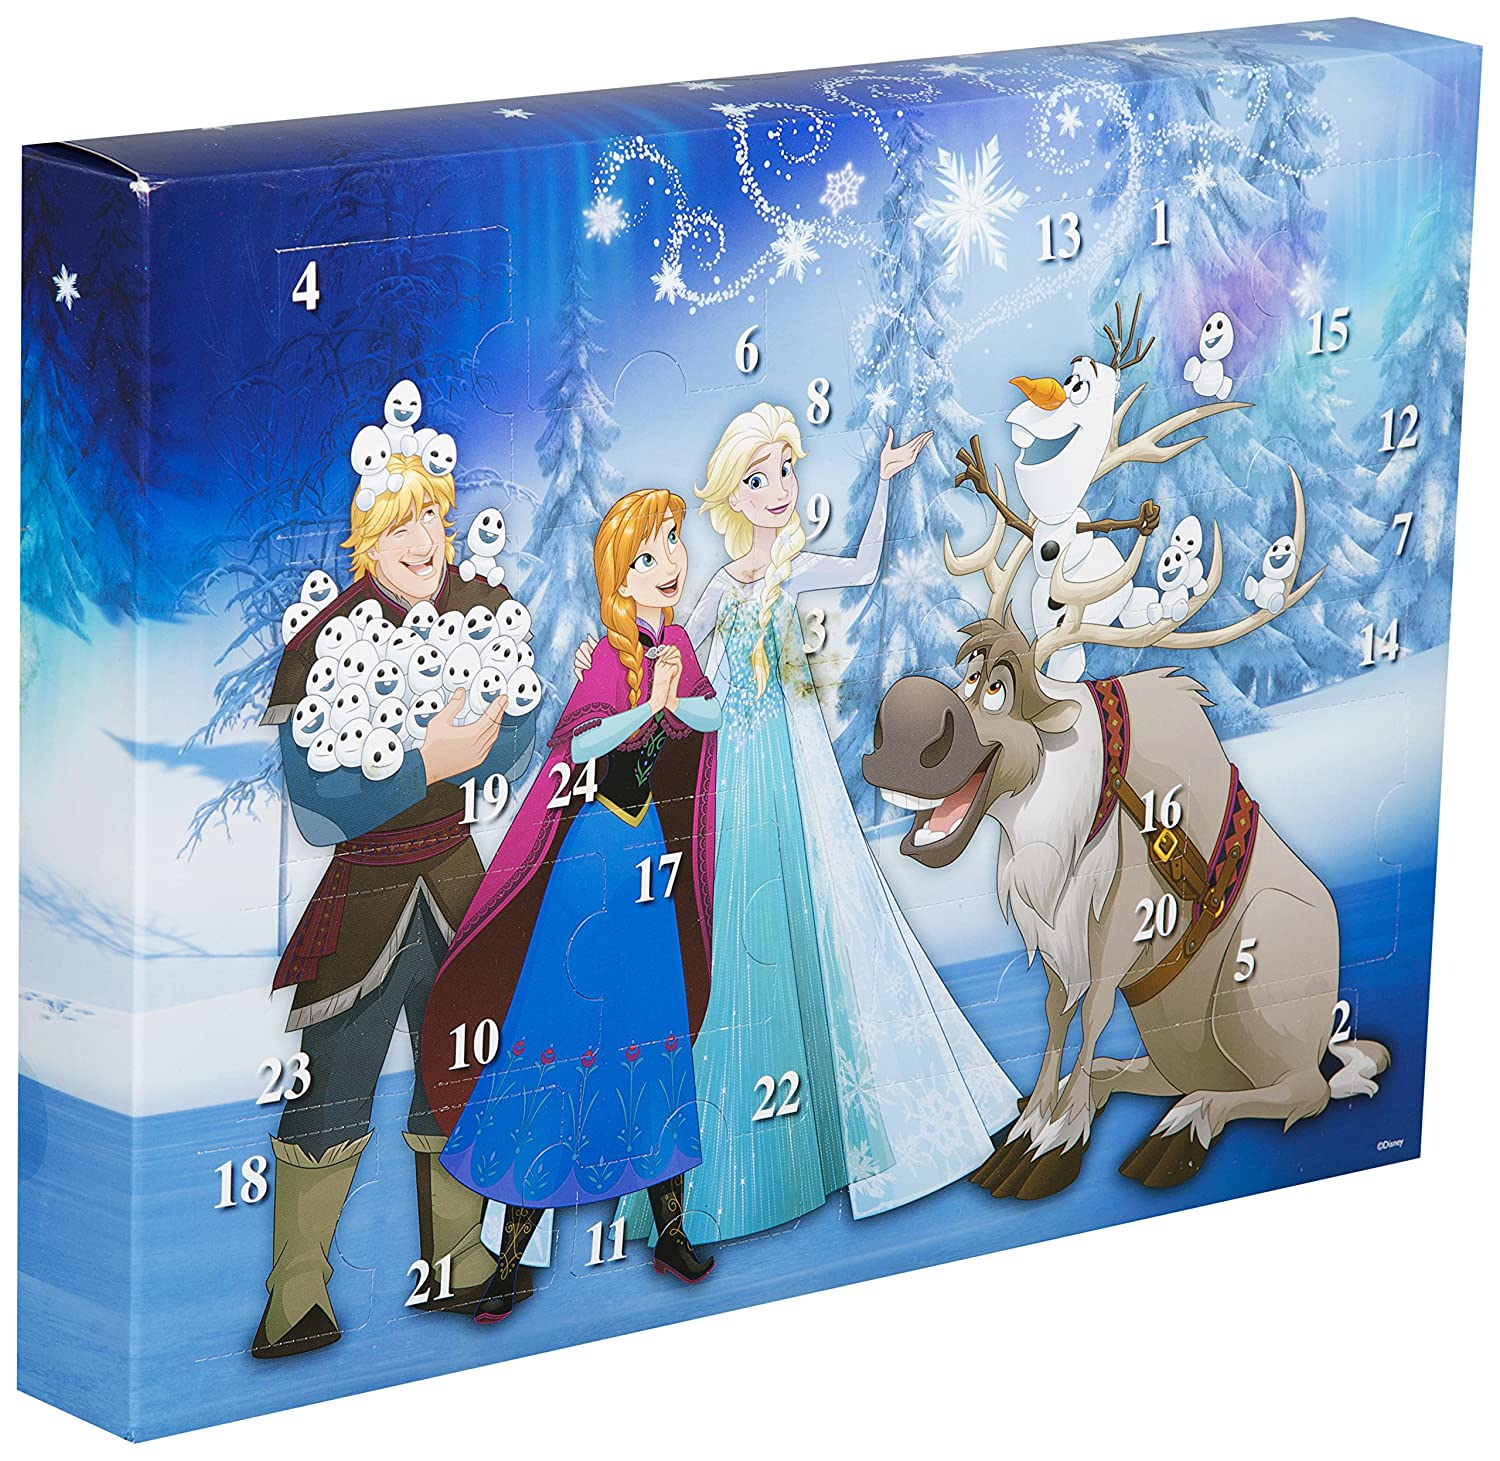 Disney Frozen DFR15-6382 Advent Calendar, Multicolour Sambro